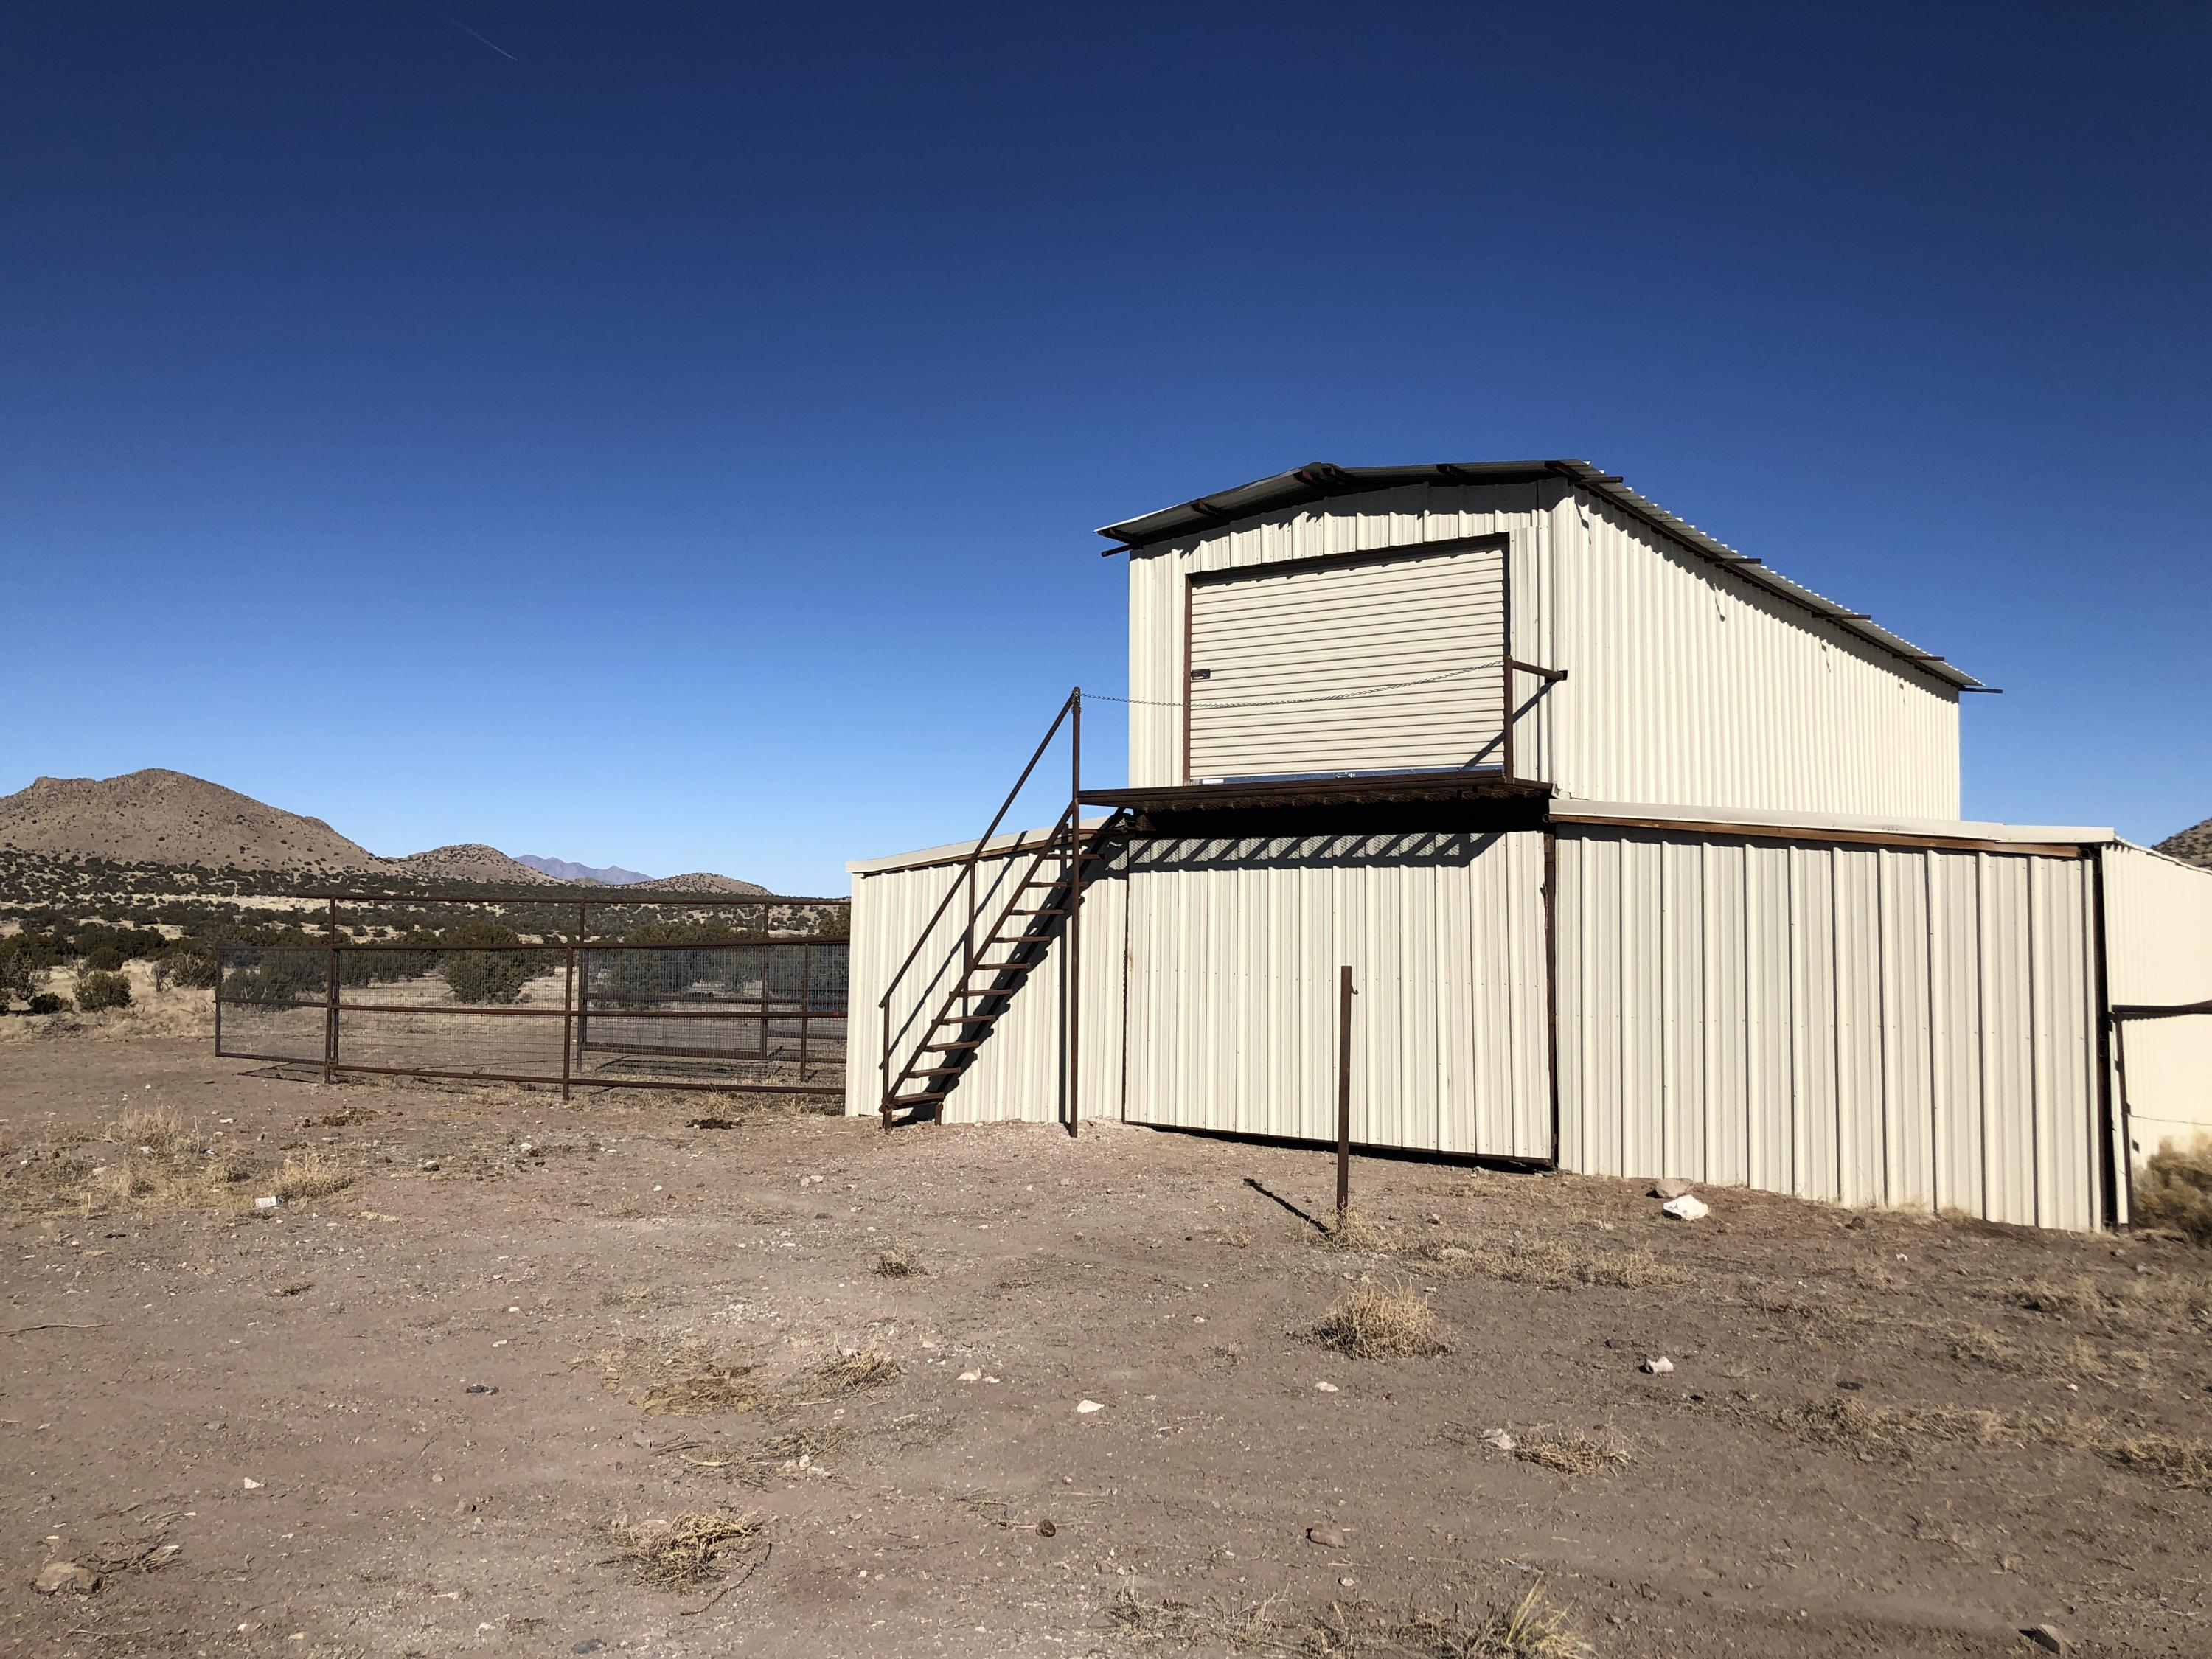 211 Riley Road, Magdalena, NM 87825 - Magdalena, NM real estate listing